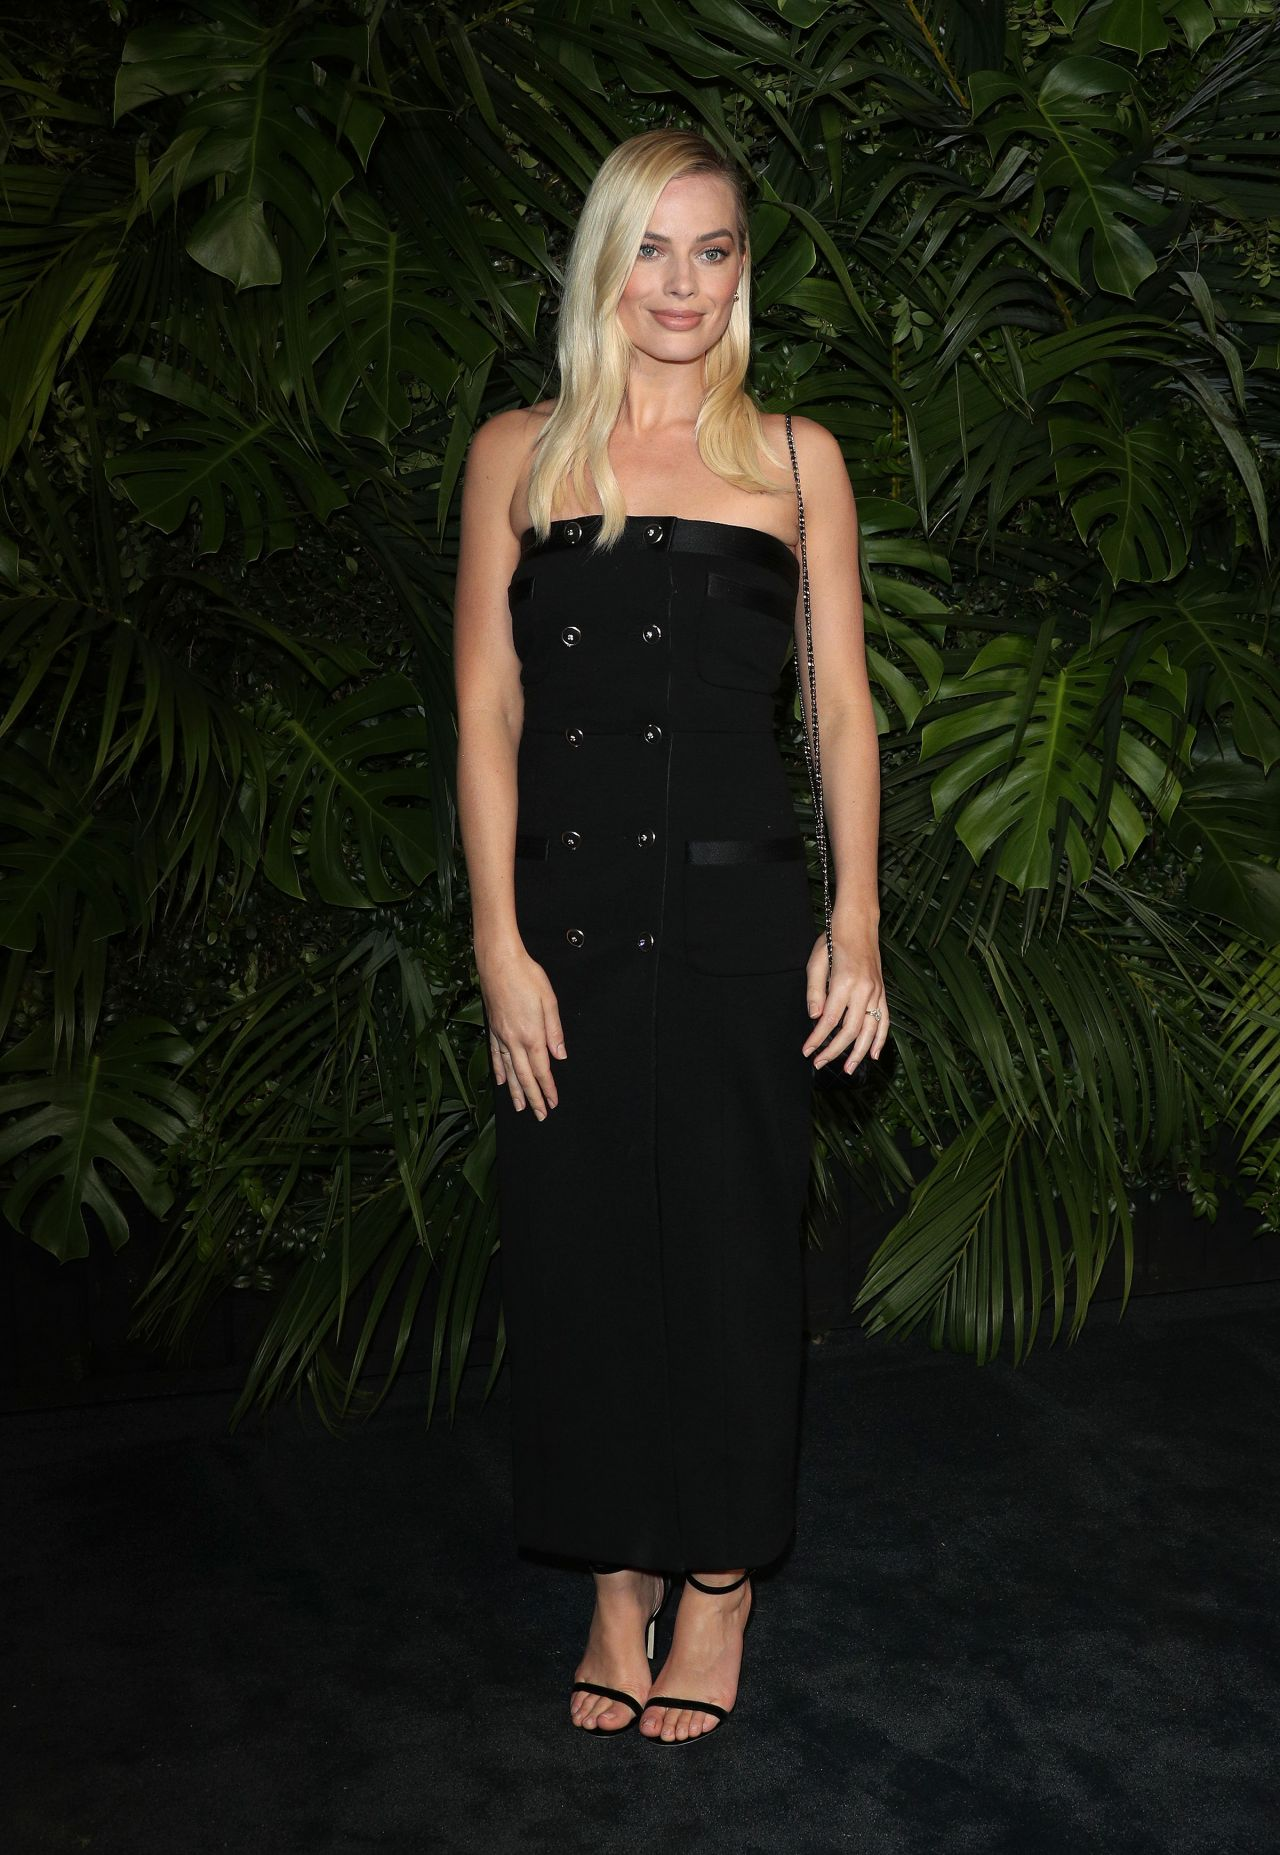 margot-robbie-in-chanel-charles-finch-and-chanel-pre-oscar-awards-2020-dinner